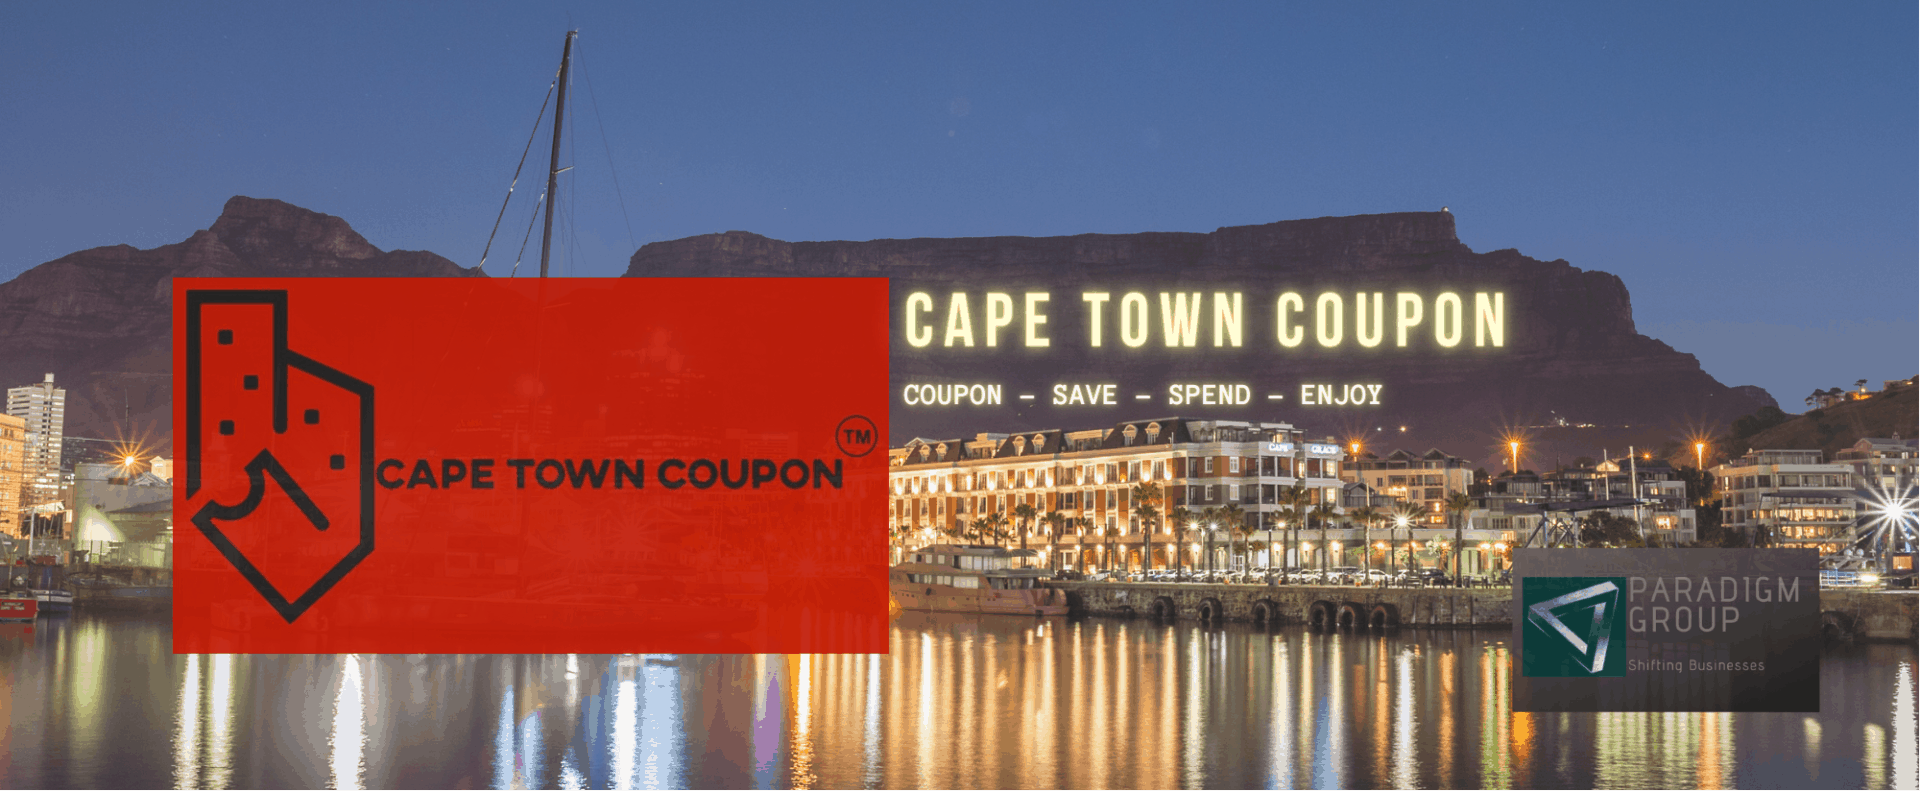 Cape Town Coupon